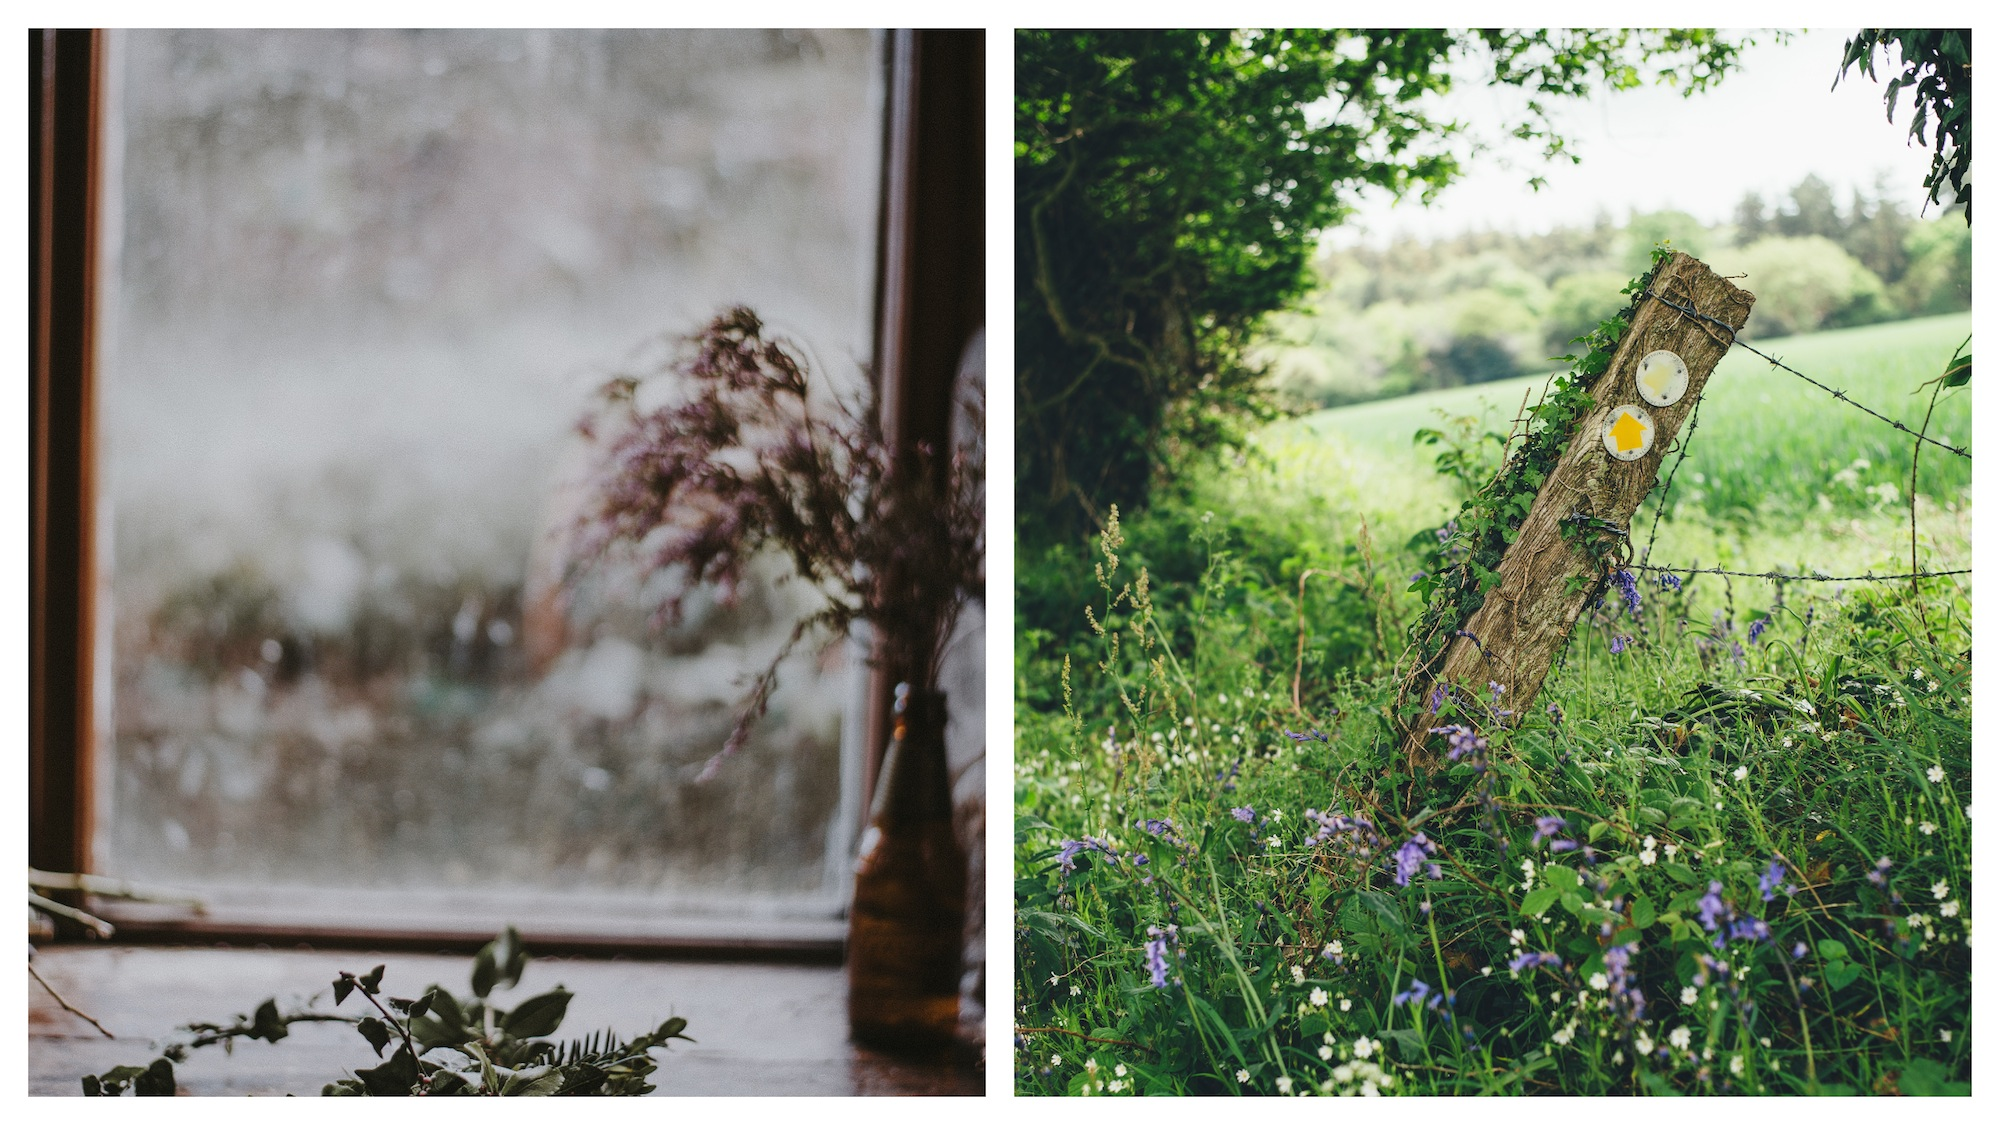 What it's like to live in the French countryside, and to spend time arranging flowers (left) and walking in nature (right).